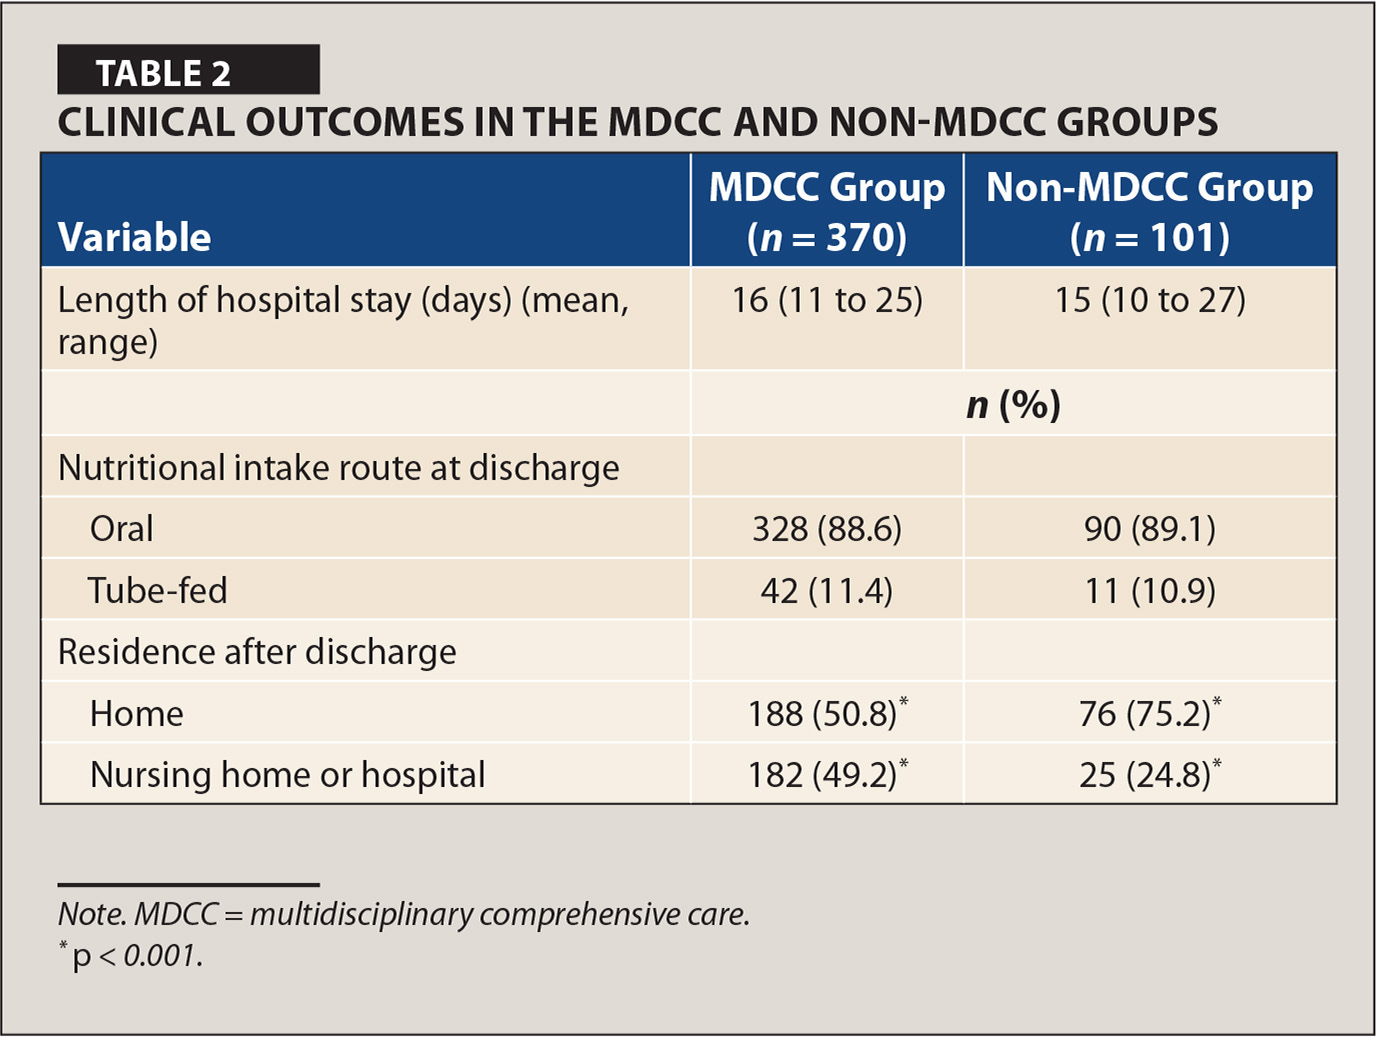 Clinical Outcomes in the MDCC and Non-MDCC Groups